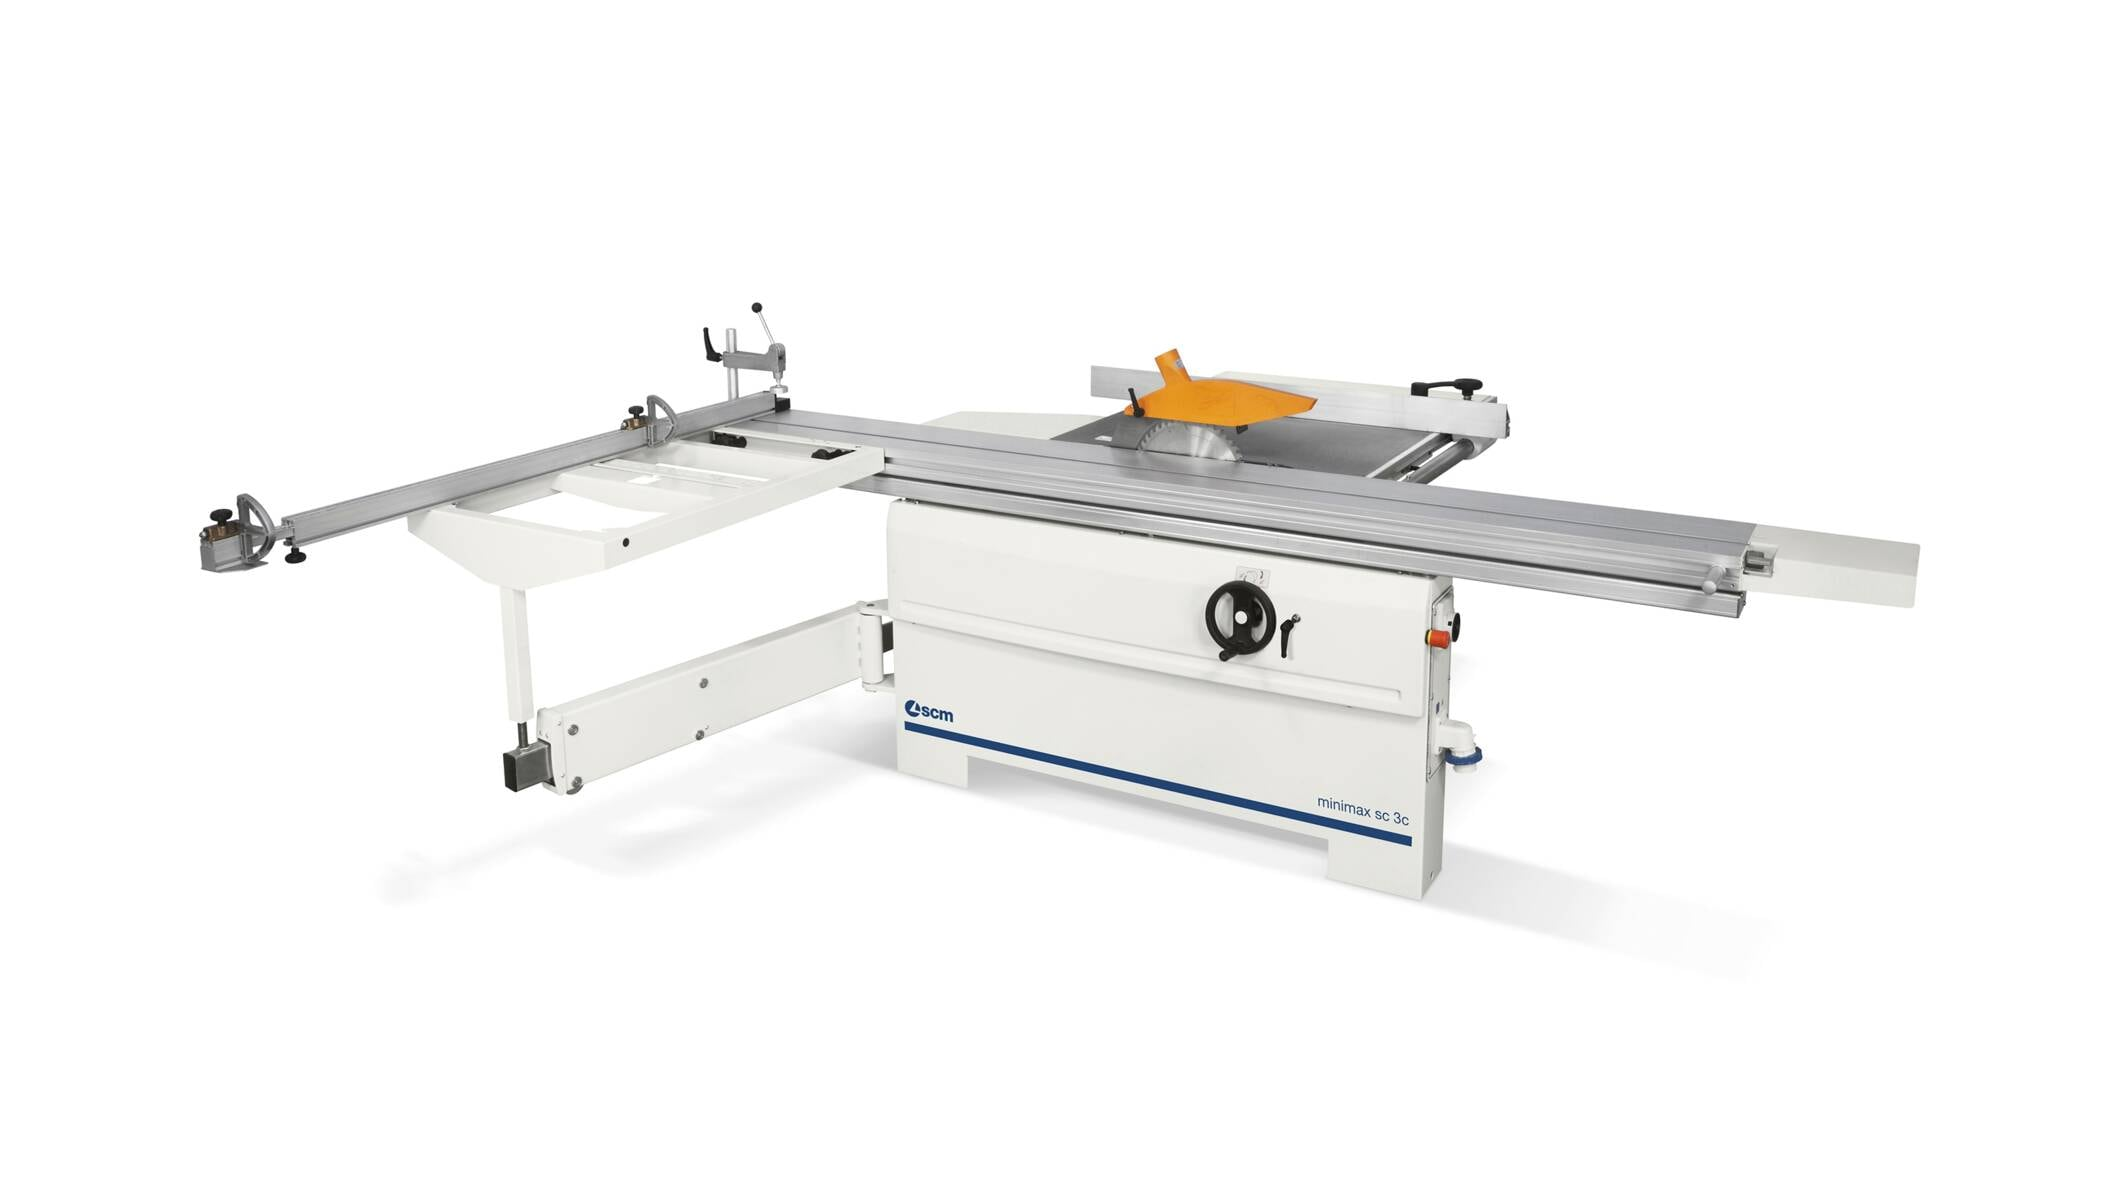 Joinery machines - Sliding table saws - minimax sc 3c